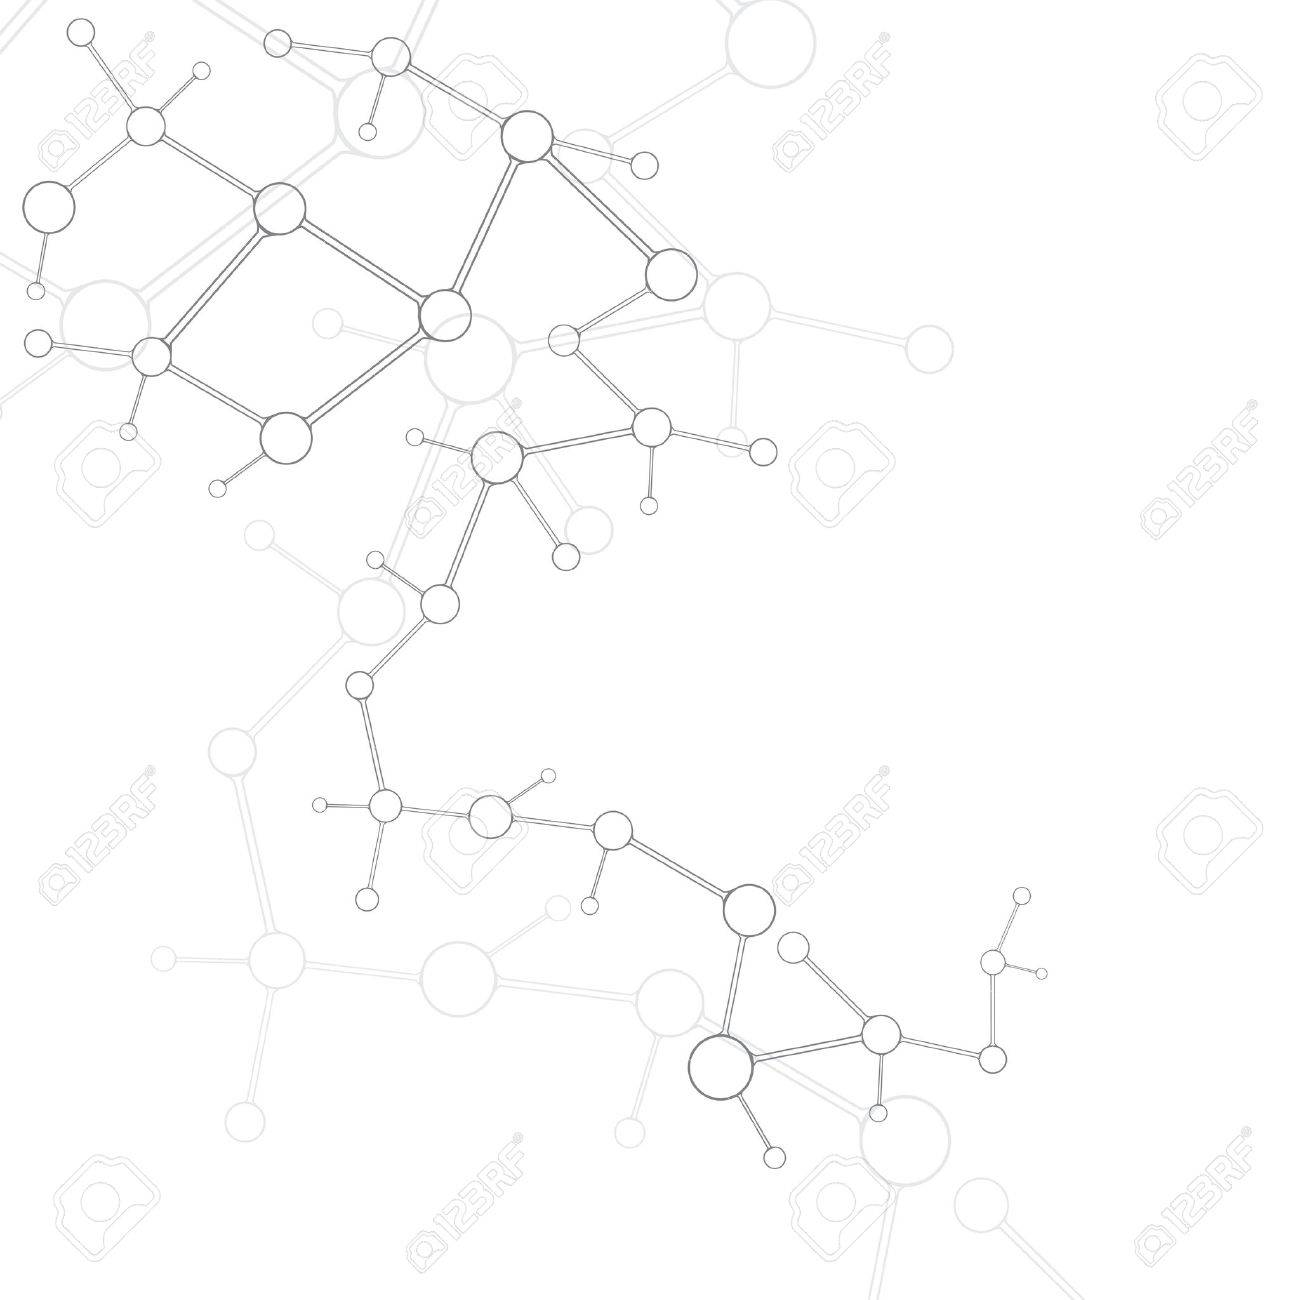 Abstract molecule silver white background - 16540898